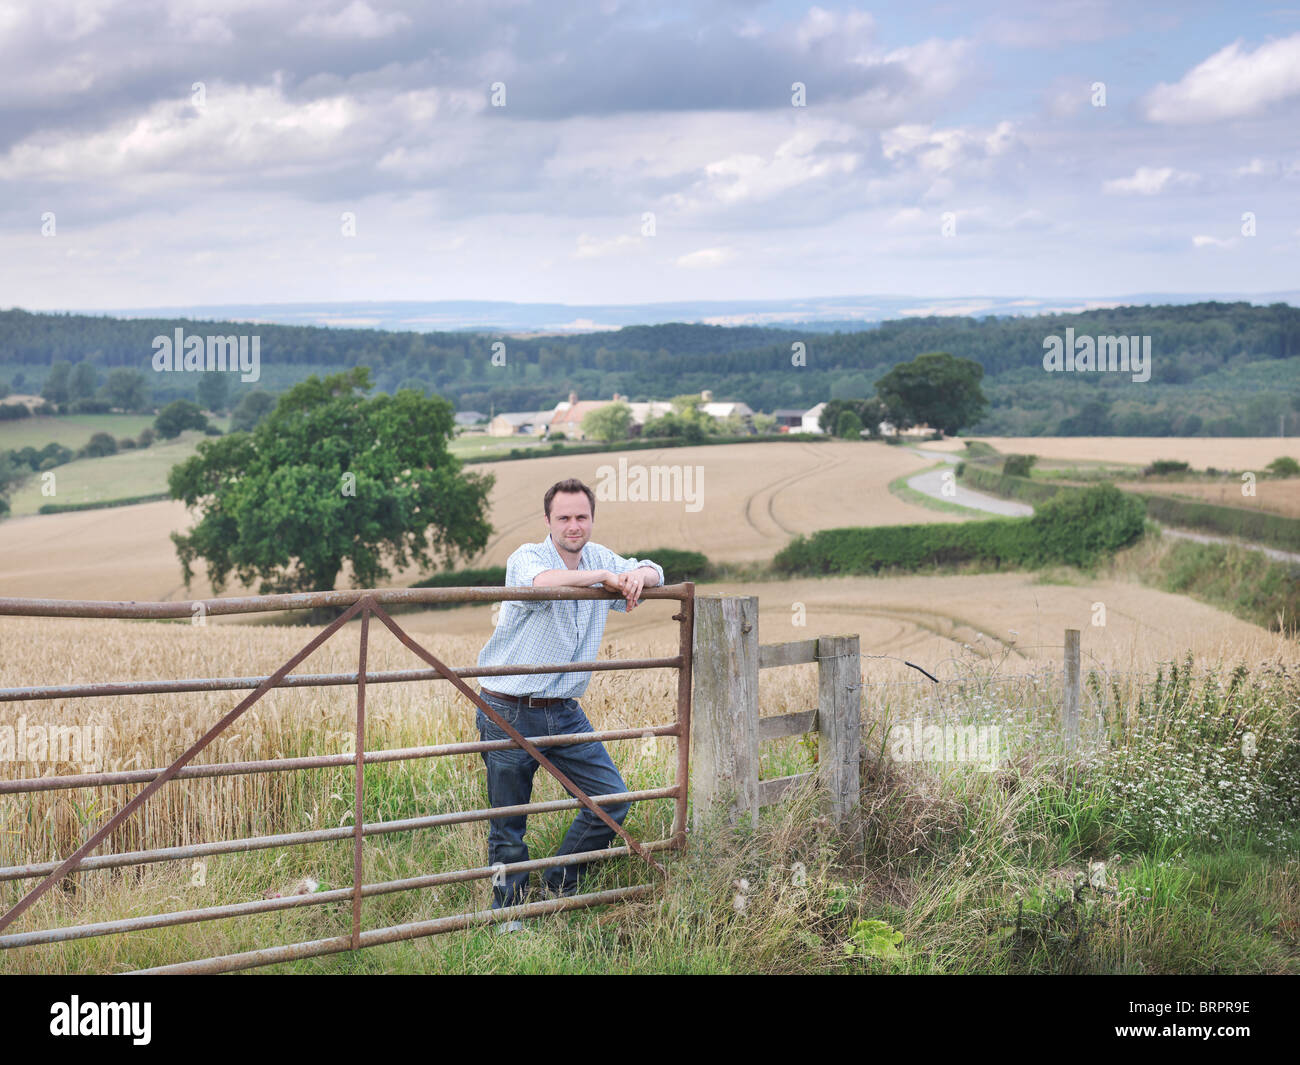 Farmer with crops and farm - Stock Image